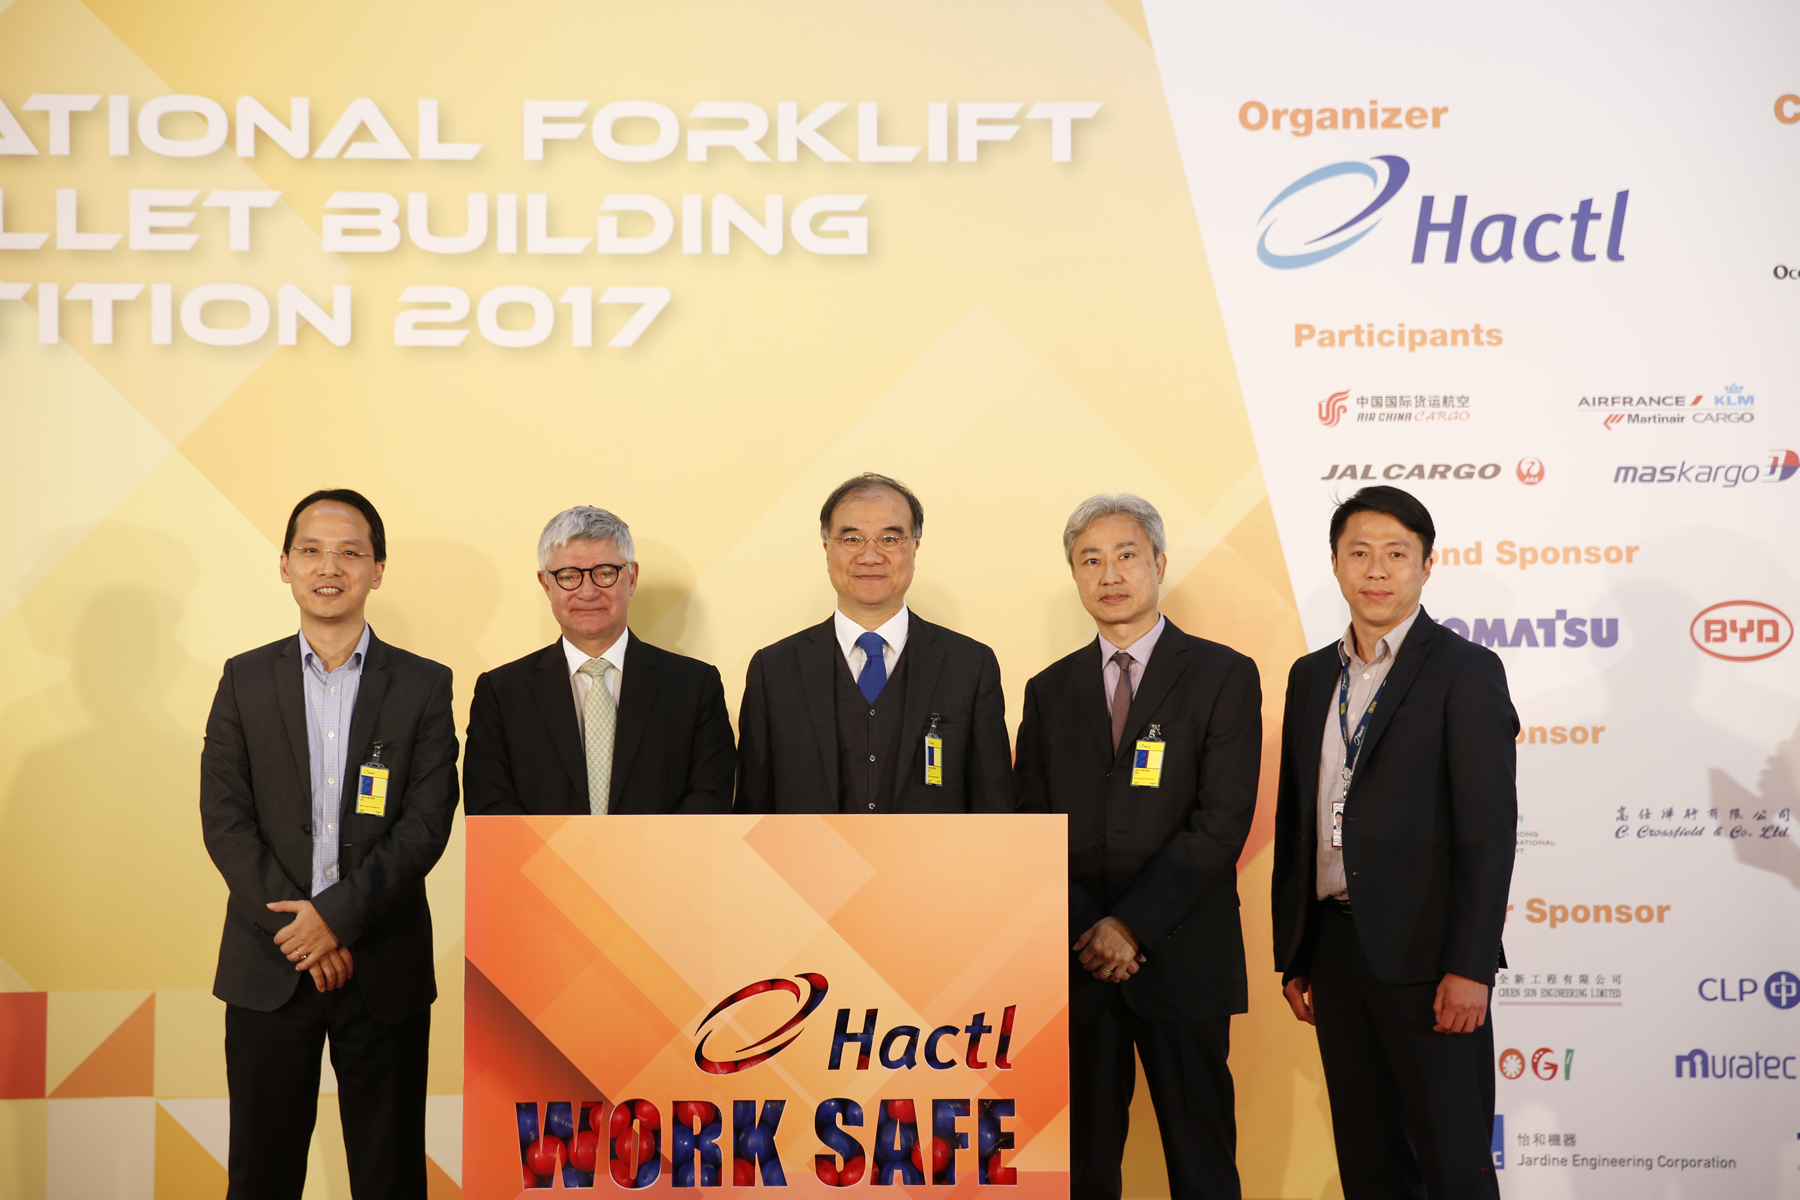 Japan Airlines wins Hactl International Forklift and Pallet Building Competition